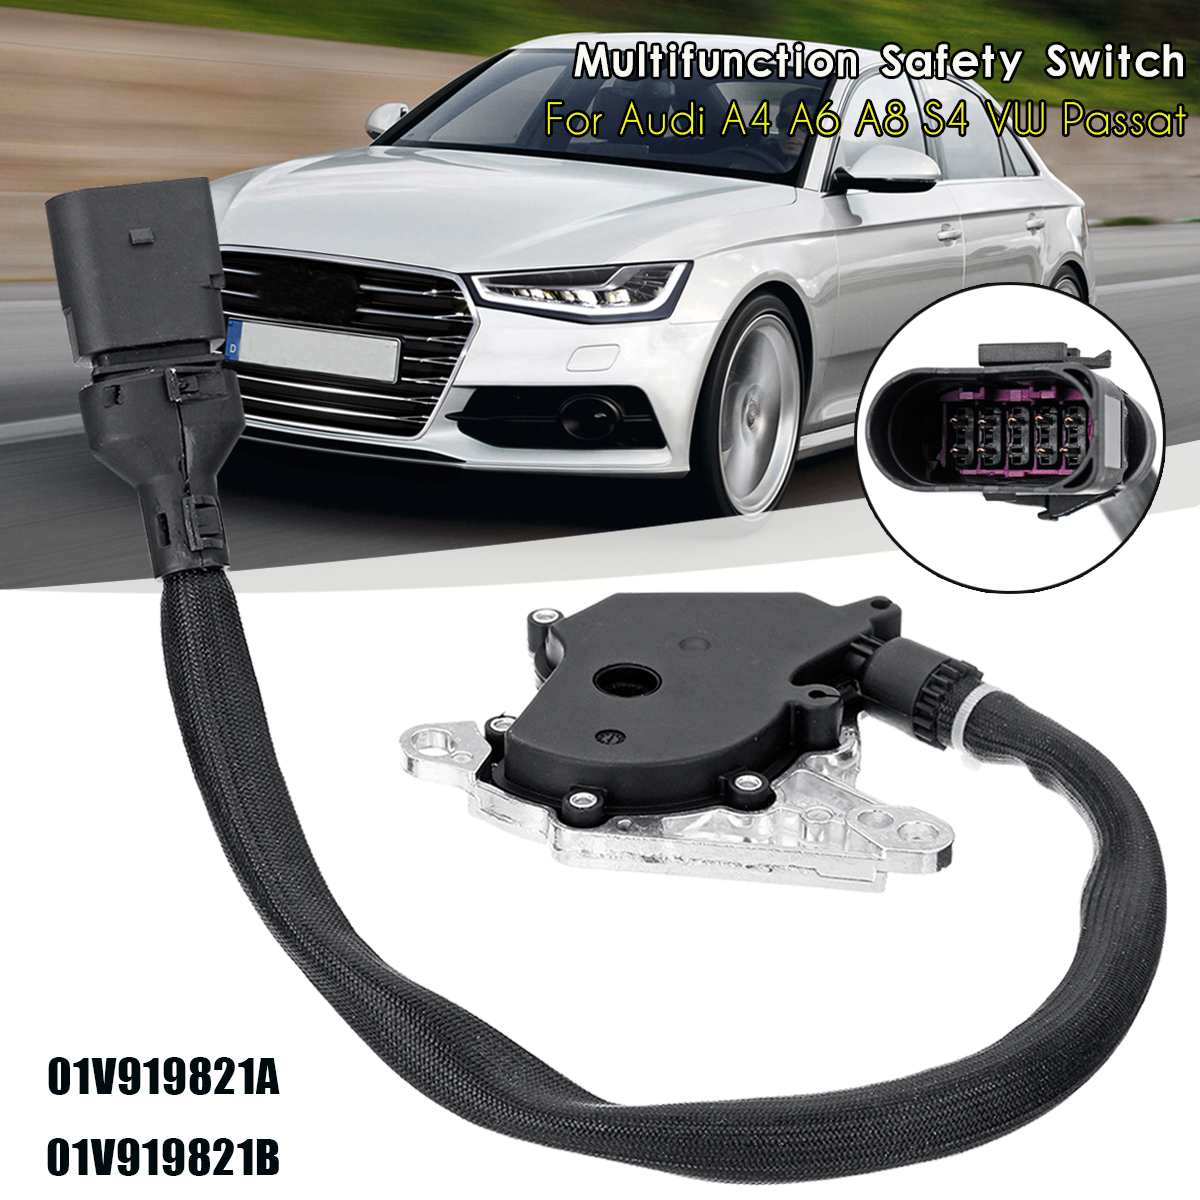 01V919821B Neutral Multifunction Safety Switch For Audi A4 A6 A8 S4 for VW Passat image